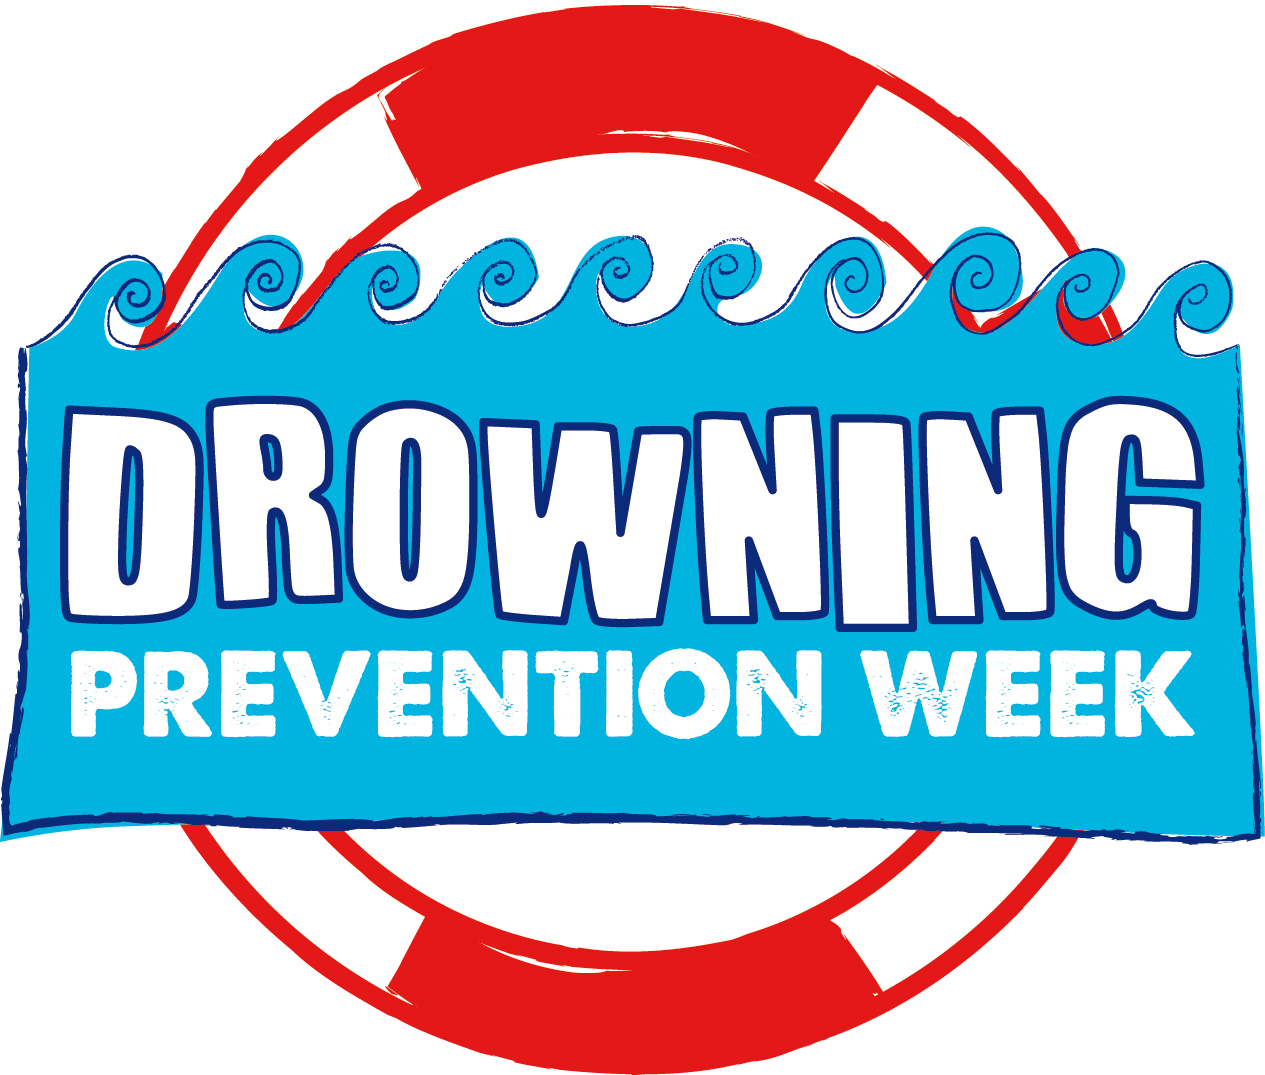 drowning awareness Learn drowning prevention techniques from pia enterprises and help stop swimming deaths frank pia offers nationwide drowning prevention training programs.